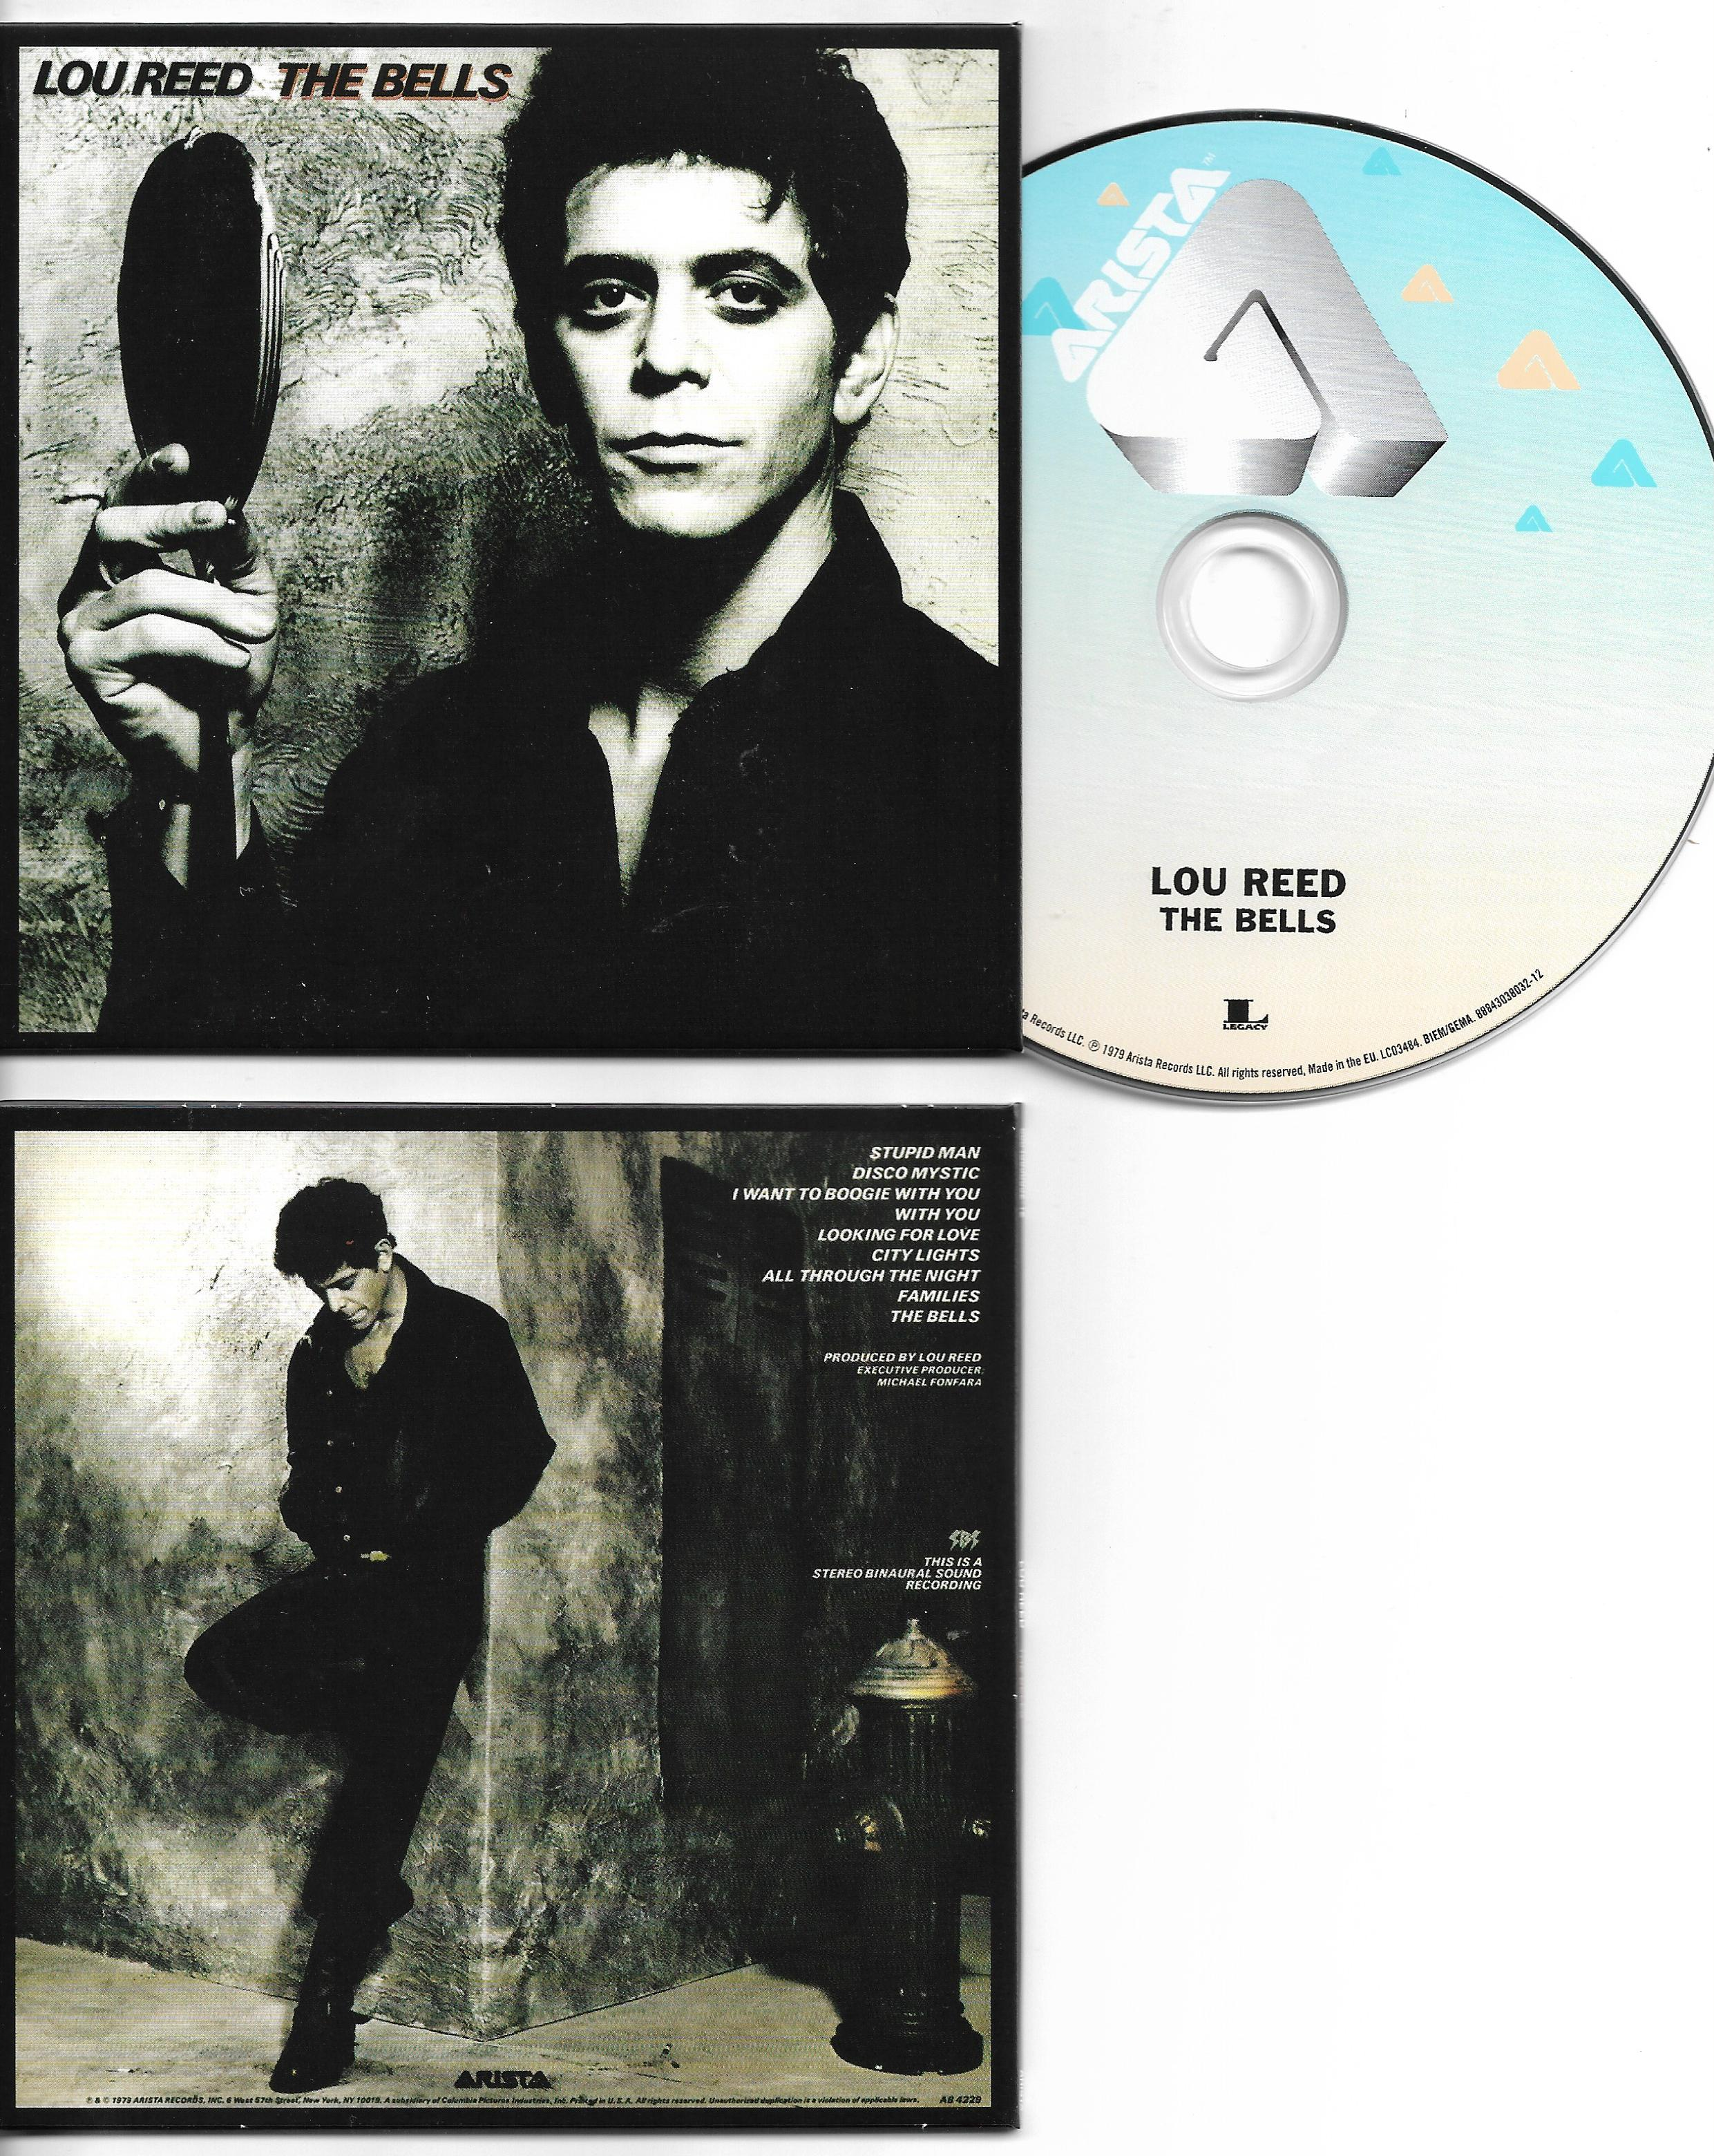 Lou REED - The Bells | Lou Reed Remaster - Mini Lp Replica 8-track Card Sleeve